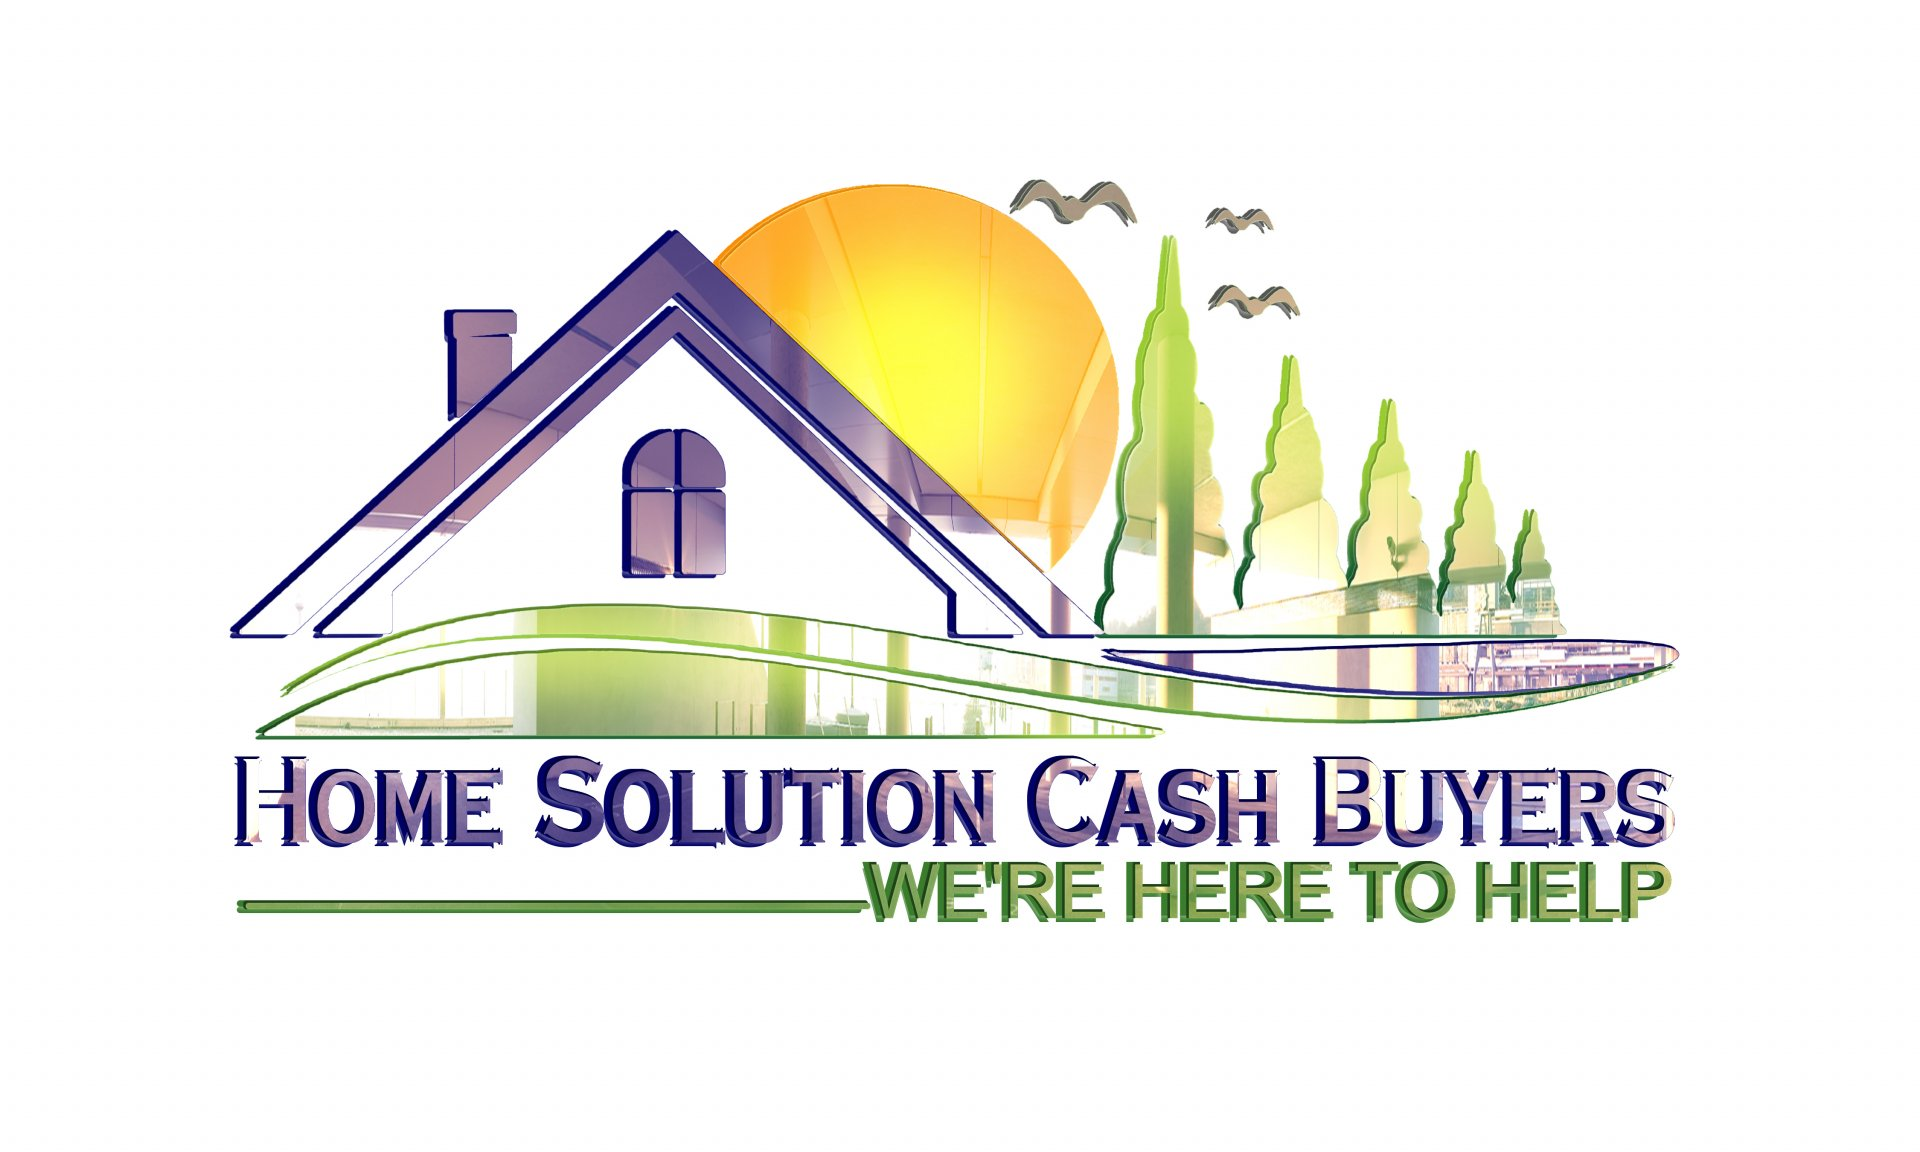 Home Solution Cash Buyers logo